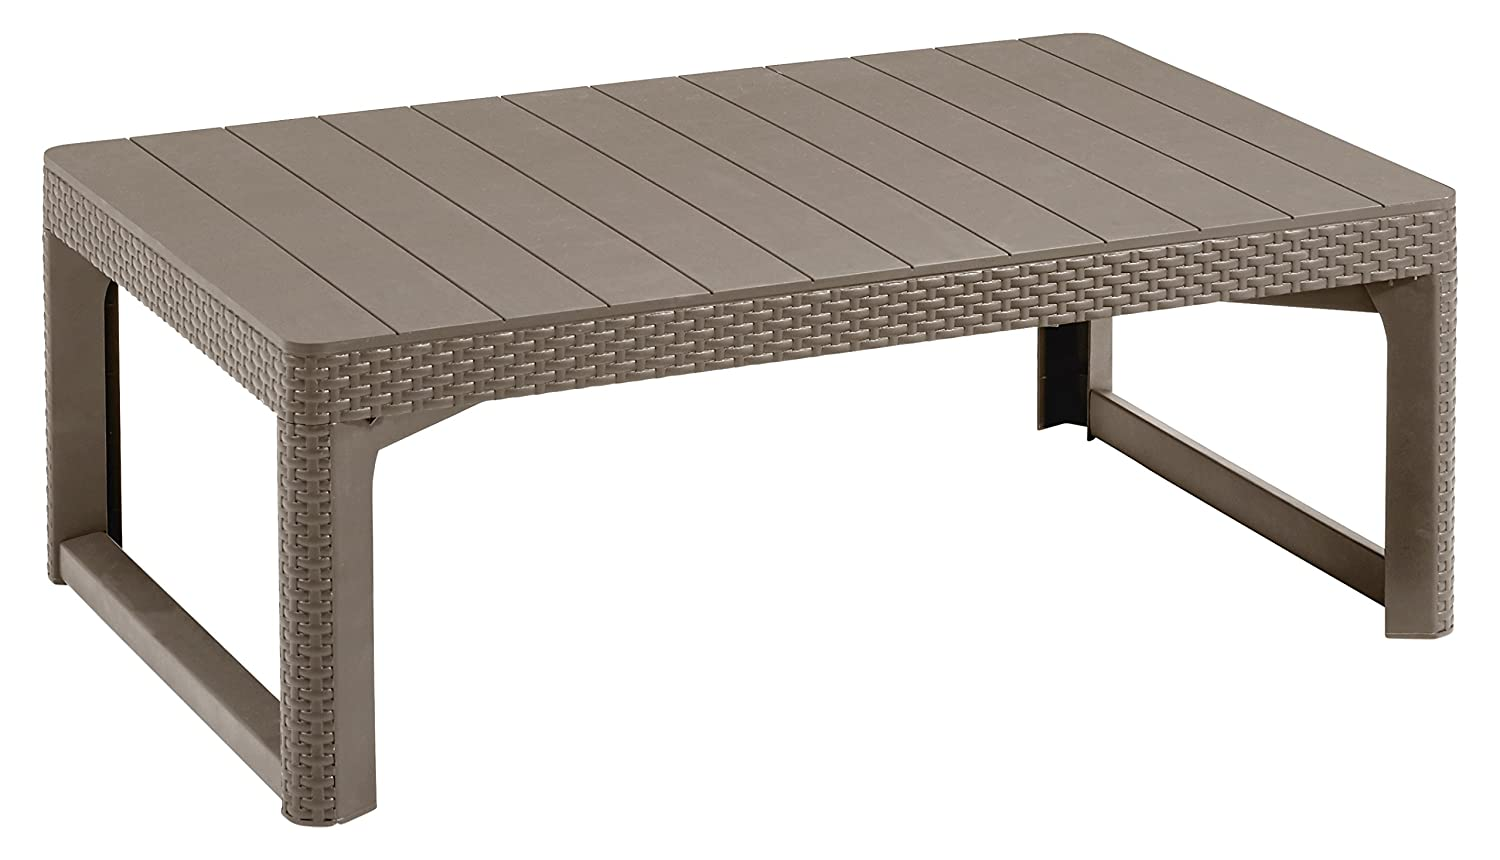 Keter Allibert Wicker Effect Lyon 2-in-1 Outdoor Garden Dining/Coffee Table - Cappuccino 232296